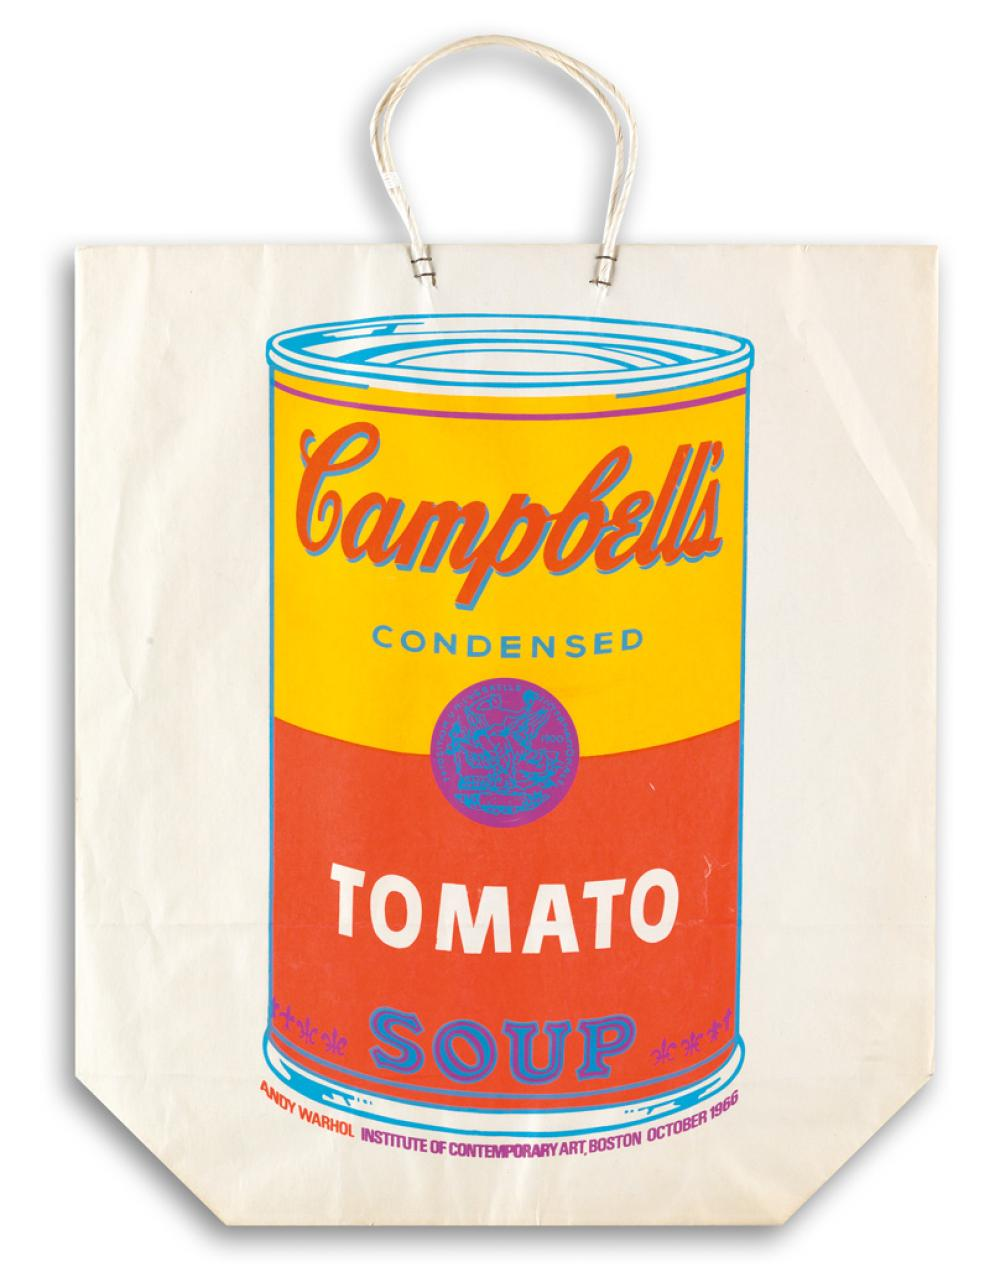 ANDY WARHOL Campbell''s Soup Can on a Shopping Bag.